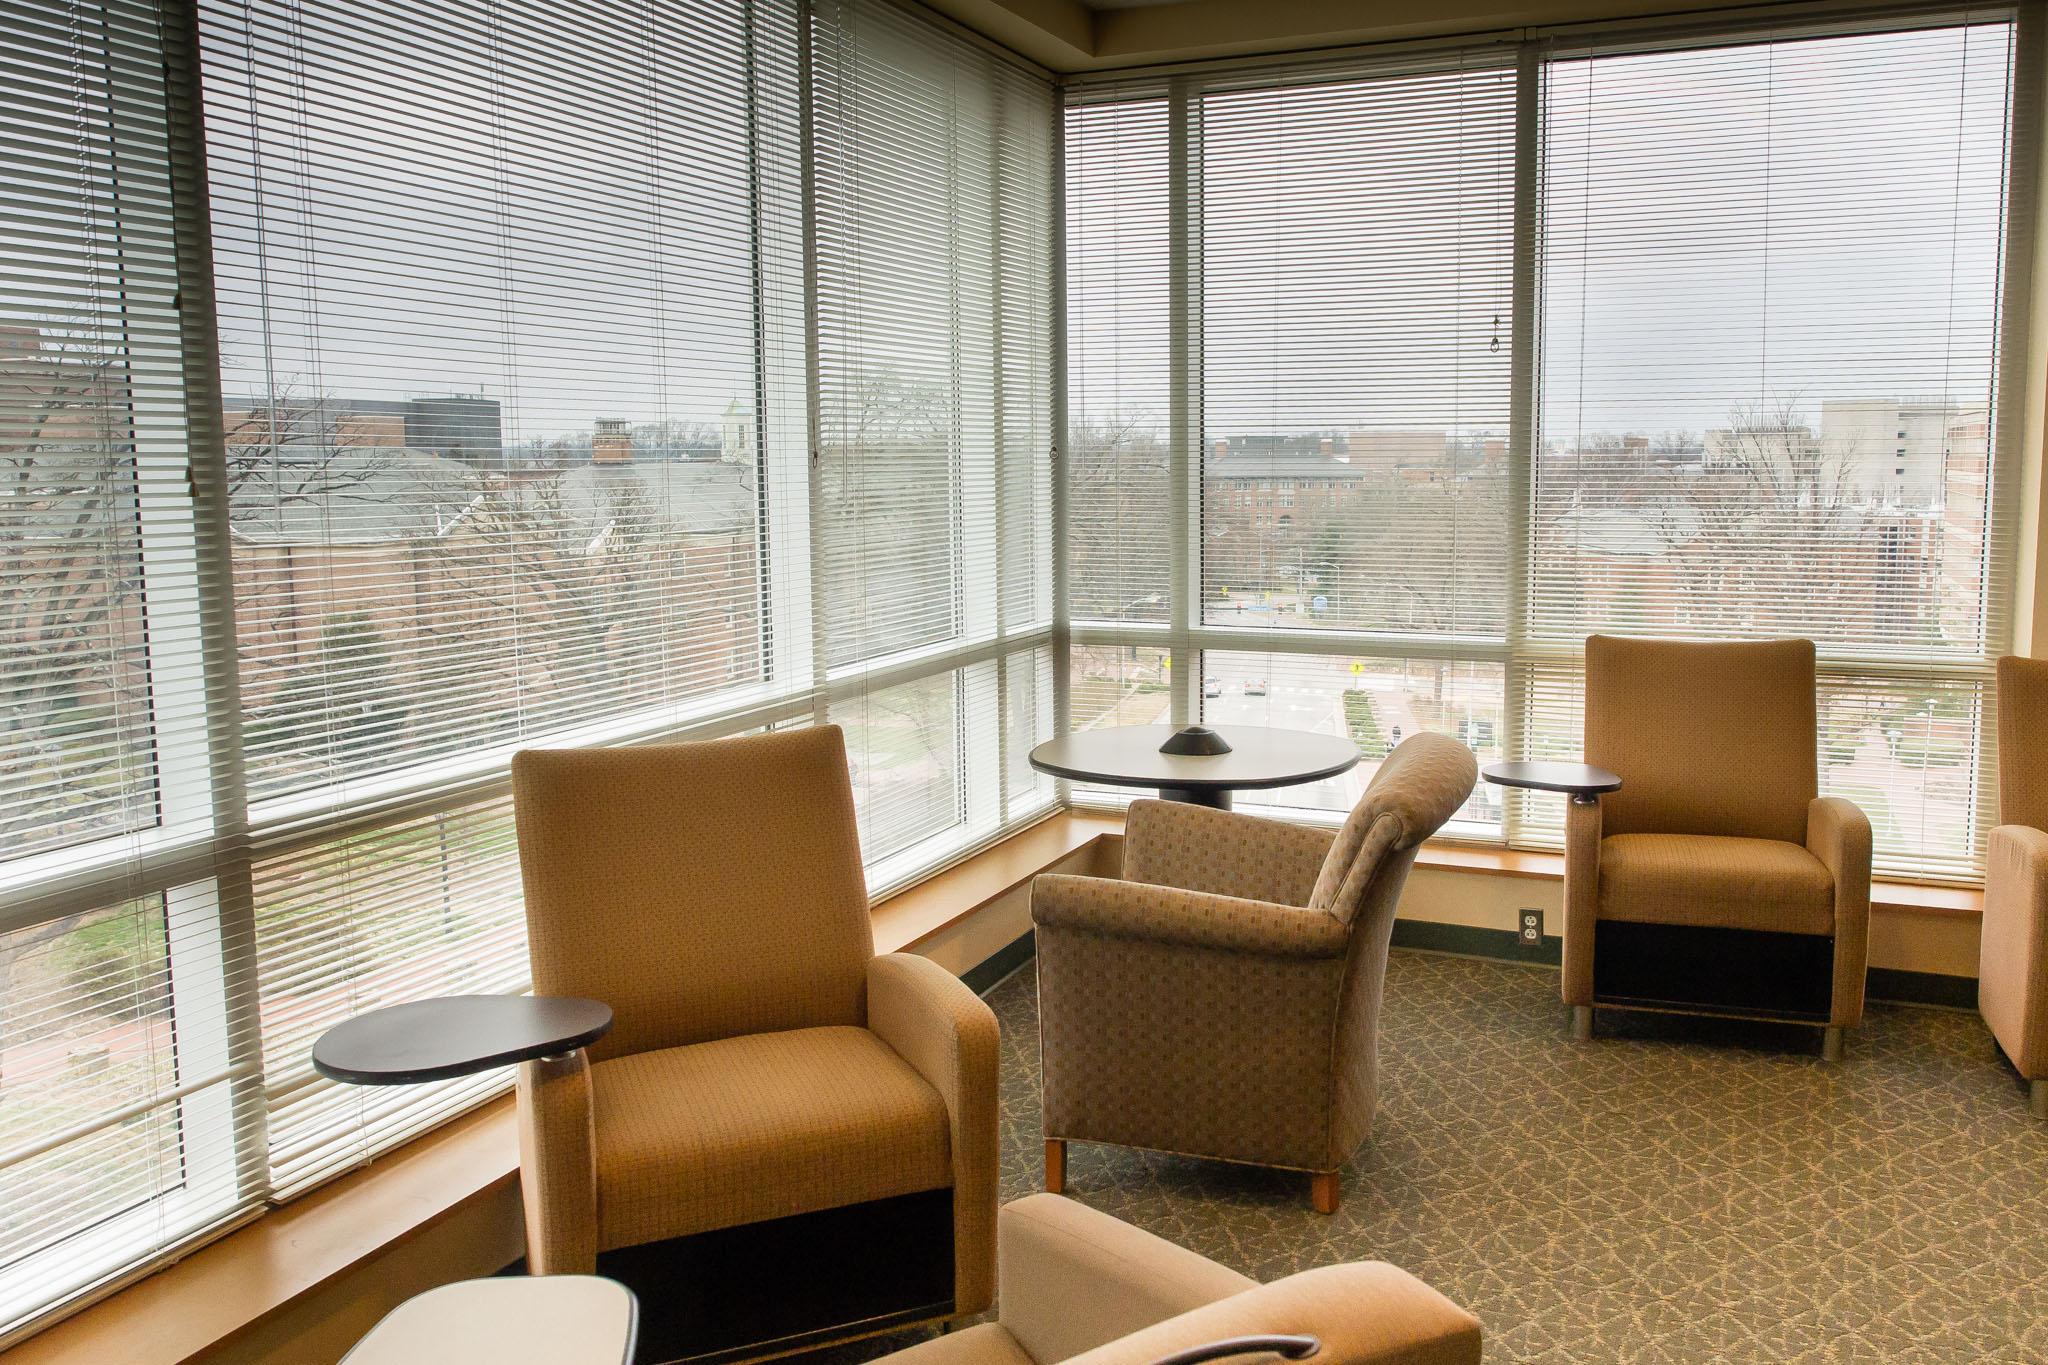 Moveable, comfy chairs with armrests in a well-lit windowed corner of Health Sciences Library's fourth floor